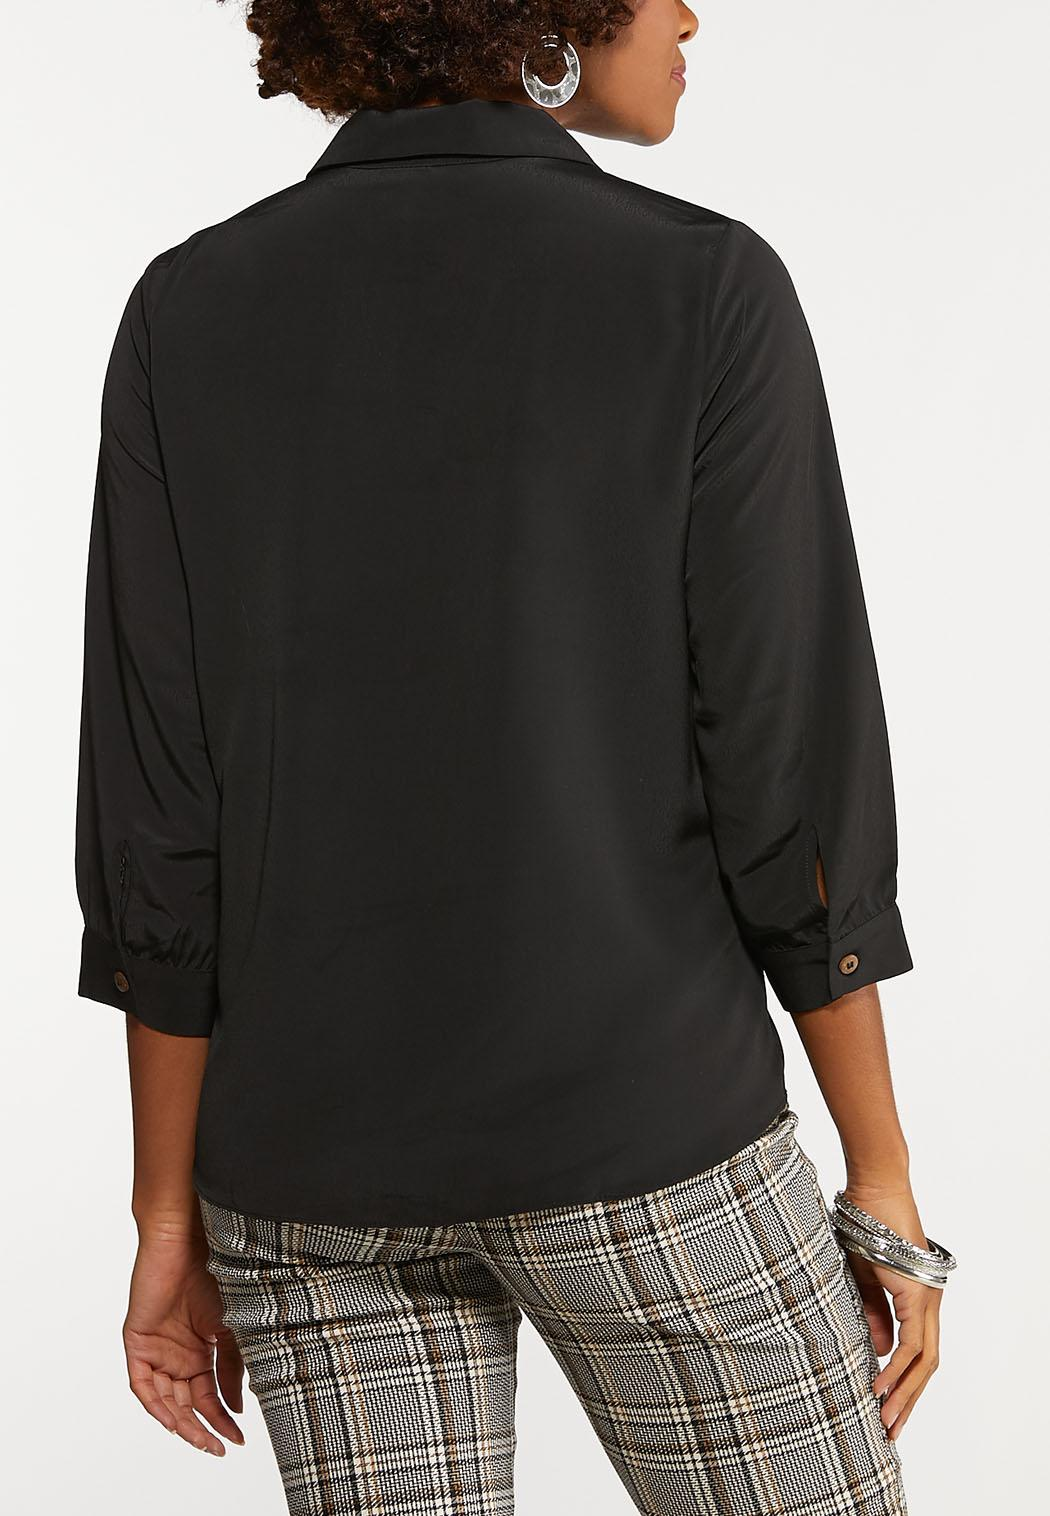 Black Button Down Shirt (Item #44126210)